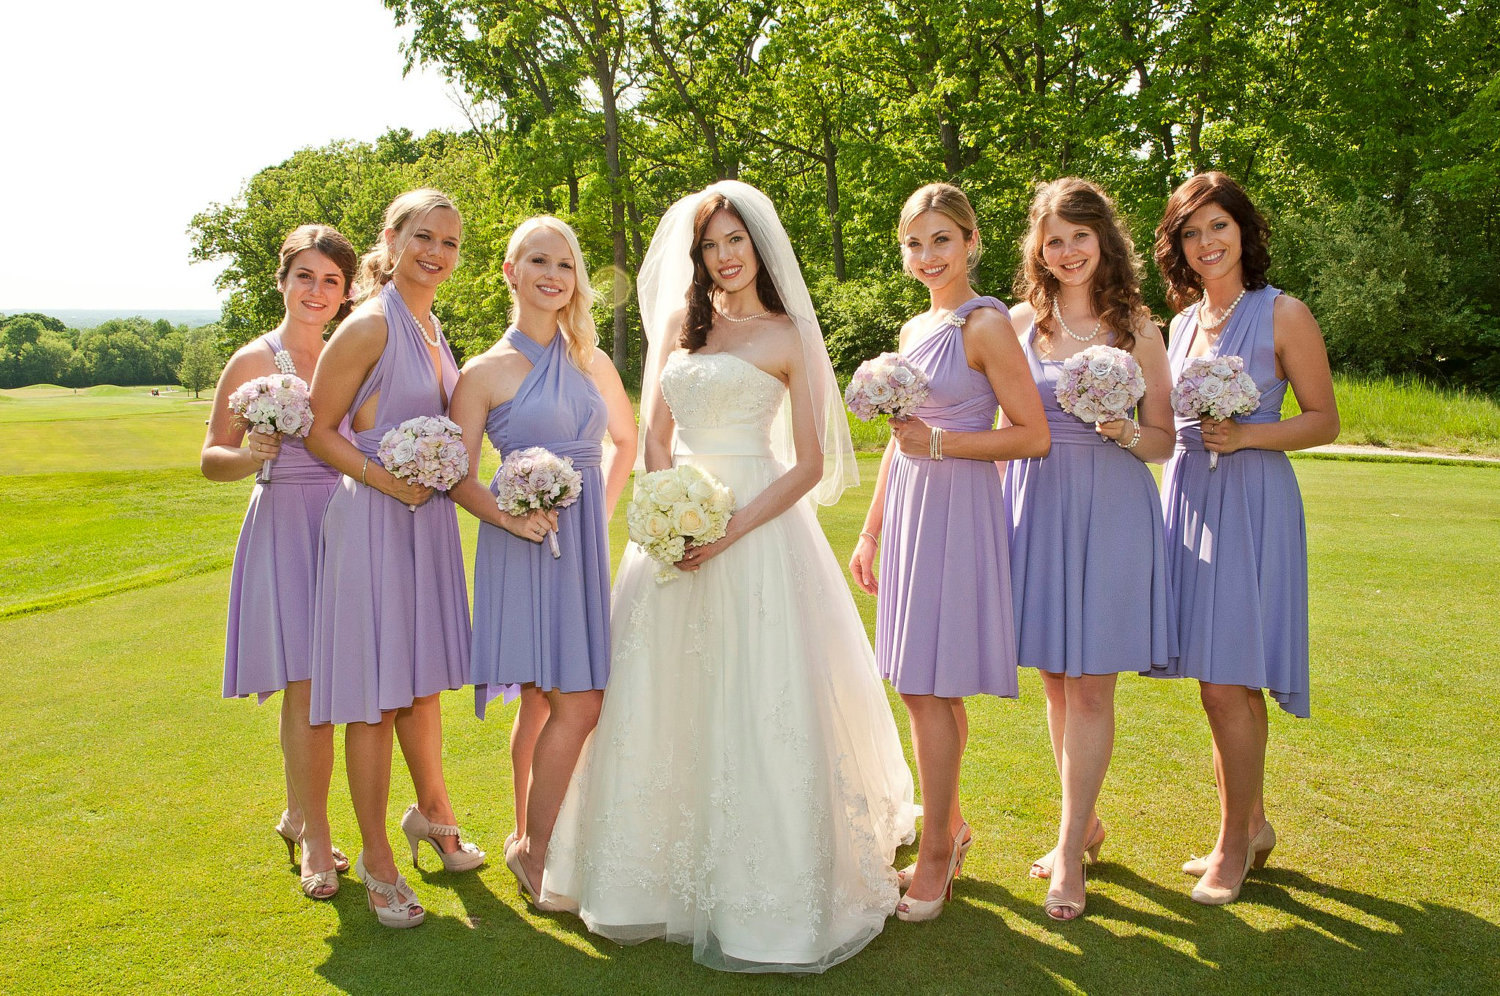 convertible bridesmaids dresses bridal party style inspiration from etsy light lilac. Black Bedroom Furniture Sets. Home Design Ideas